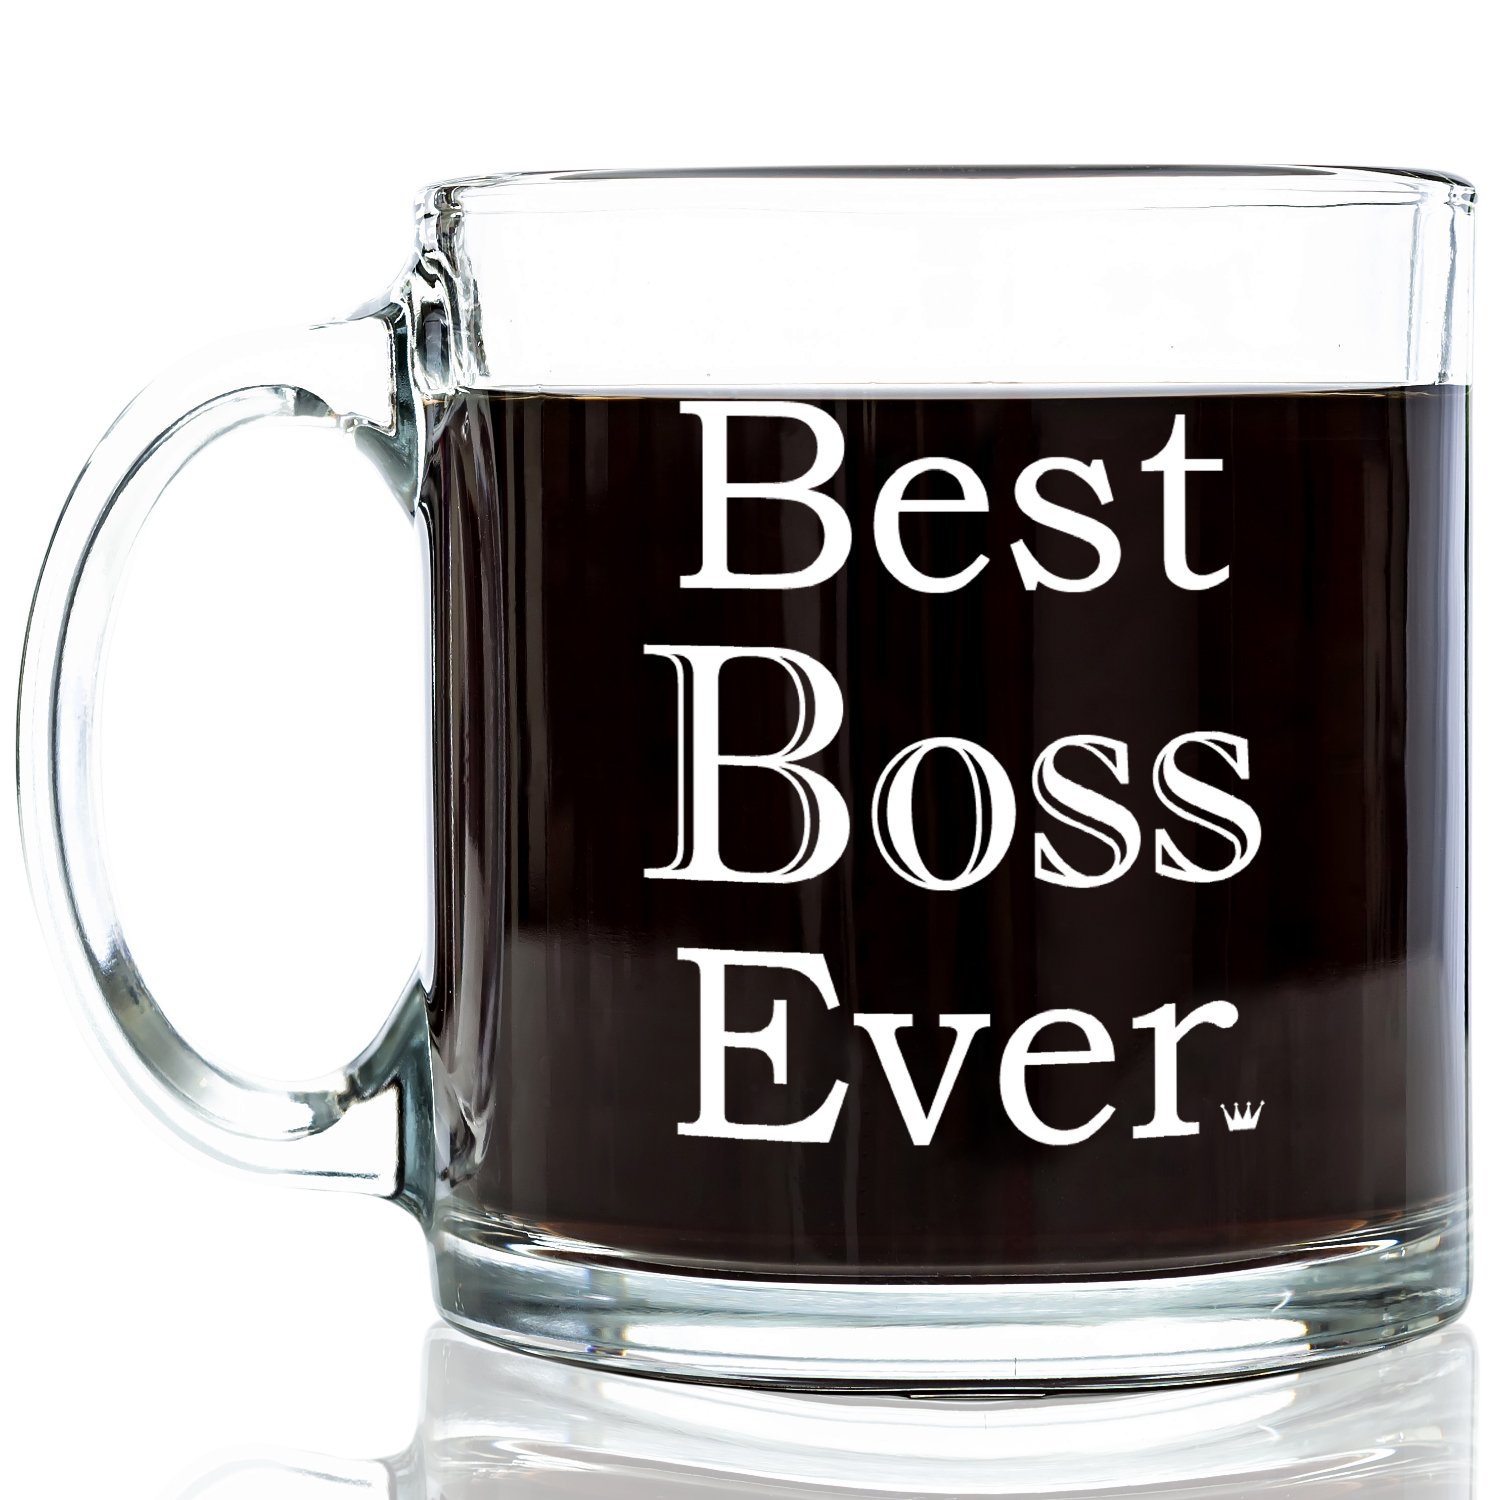 100 coolest coffee mugs top 10 best travel mugs Top 10 coffee mugs